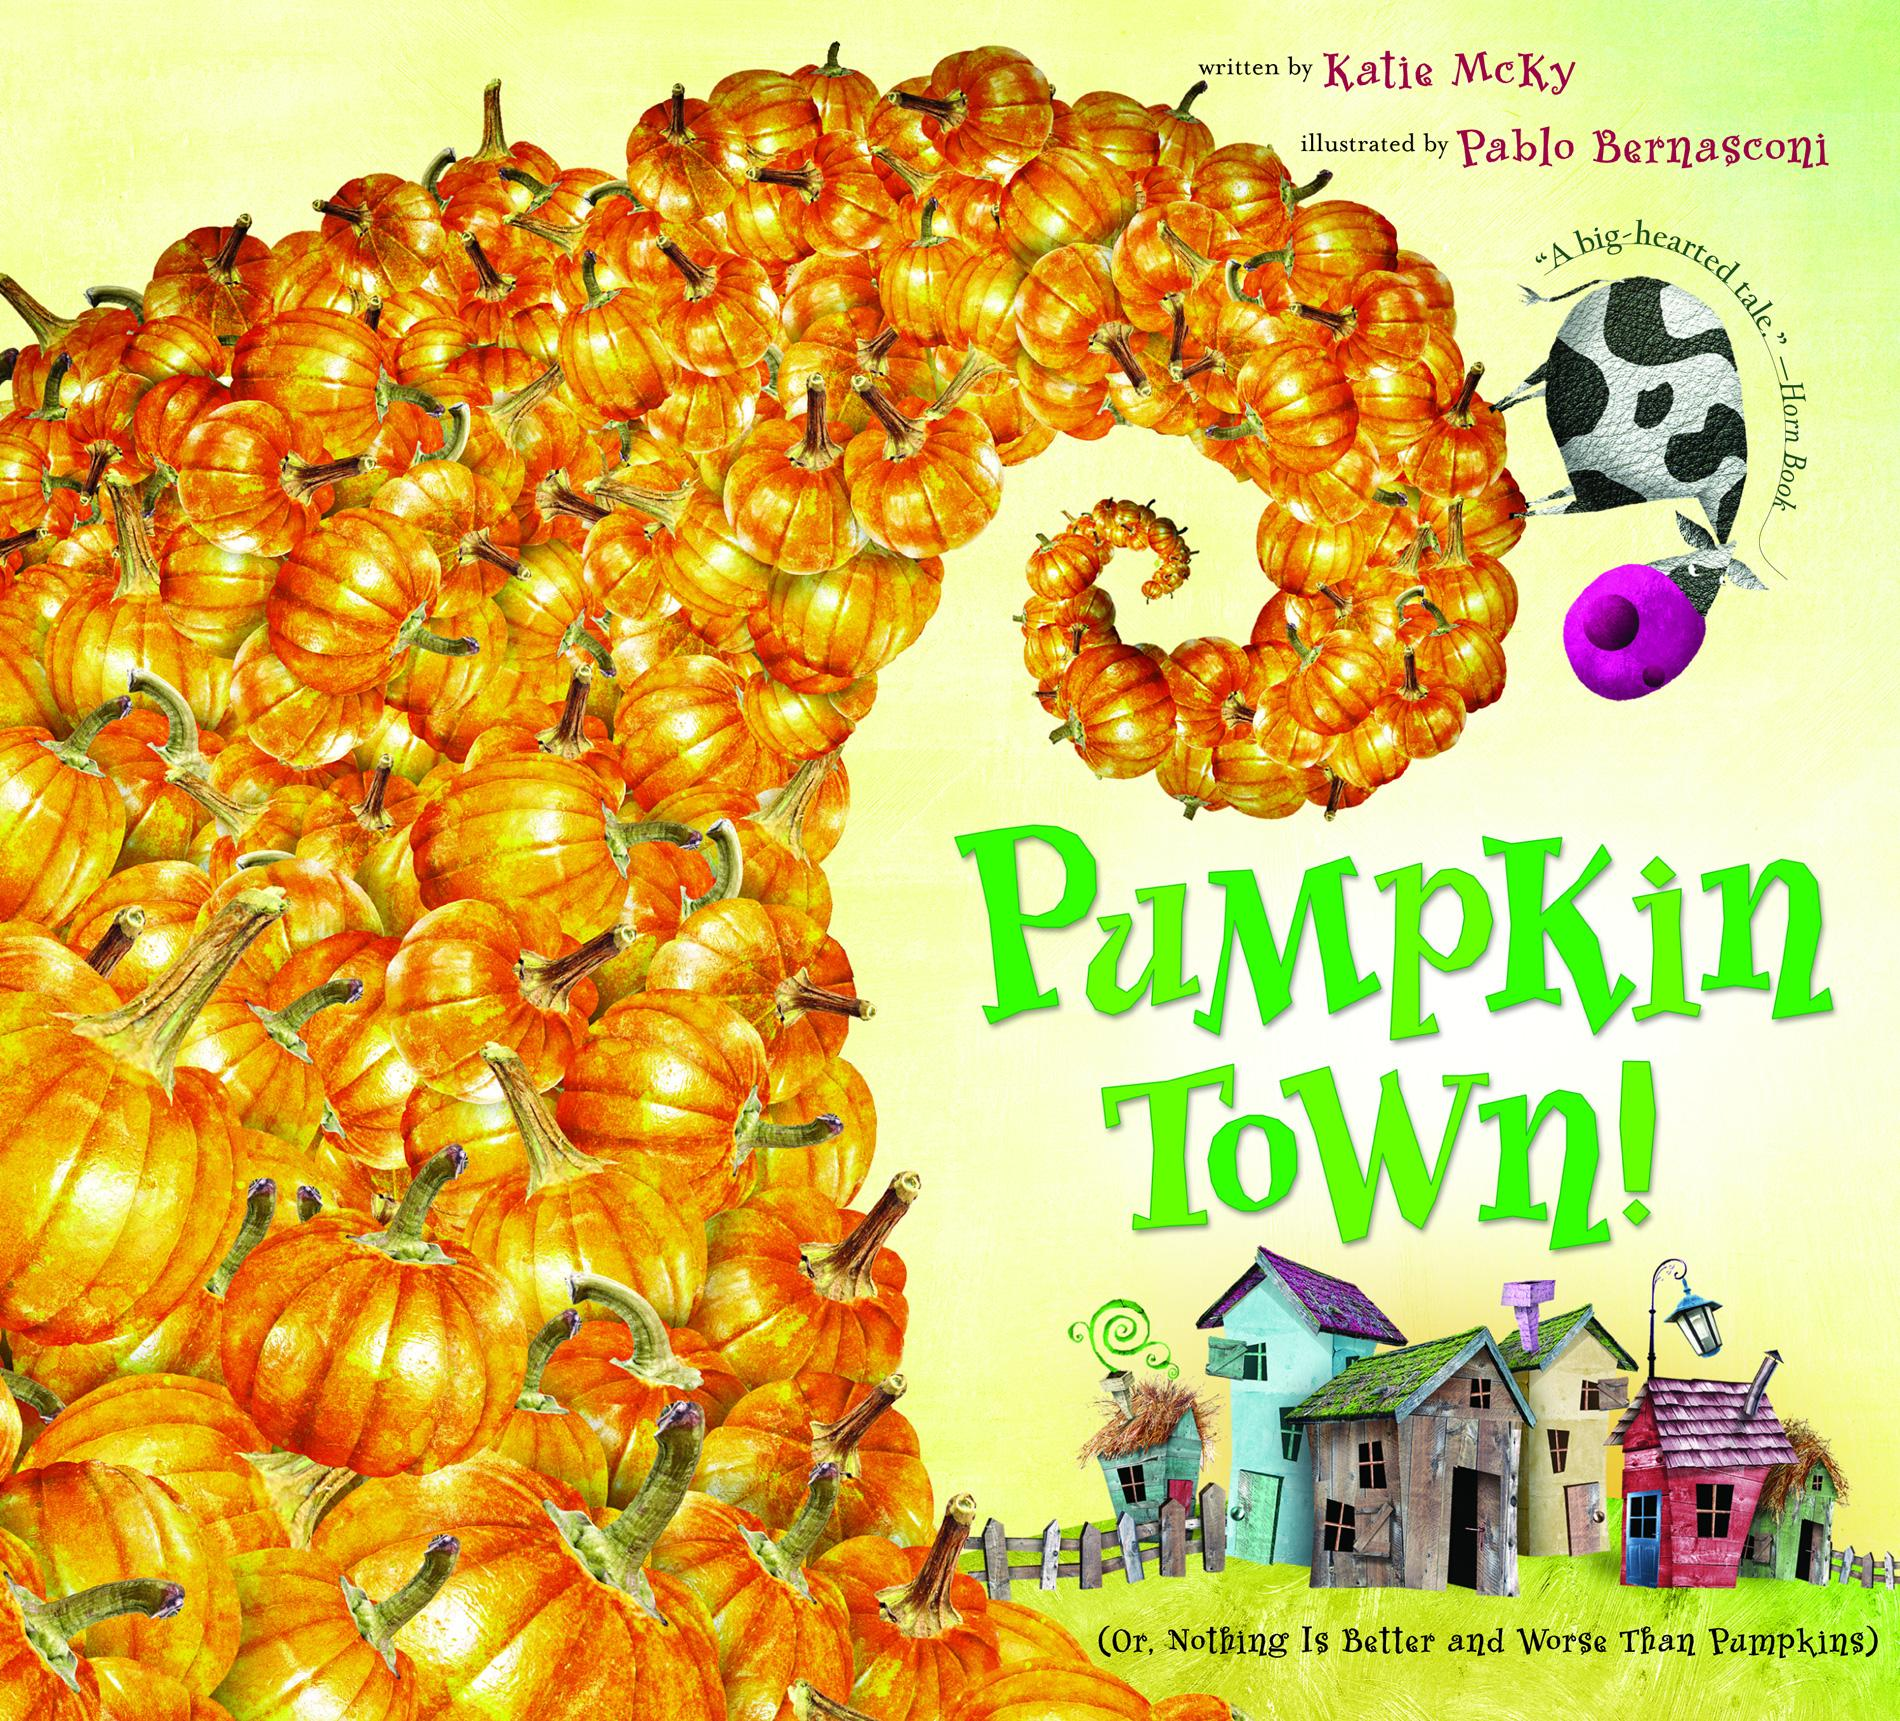 Pumpkin Town! Or, Nothing Is Better and Worse Than Pumpkins